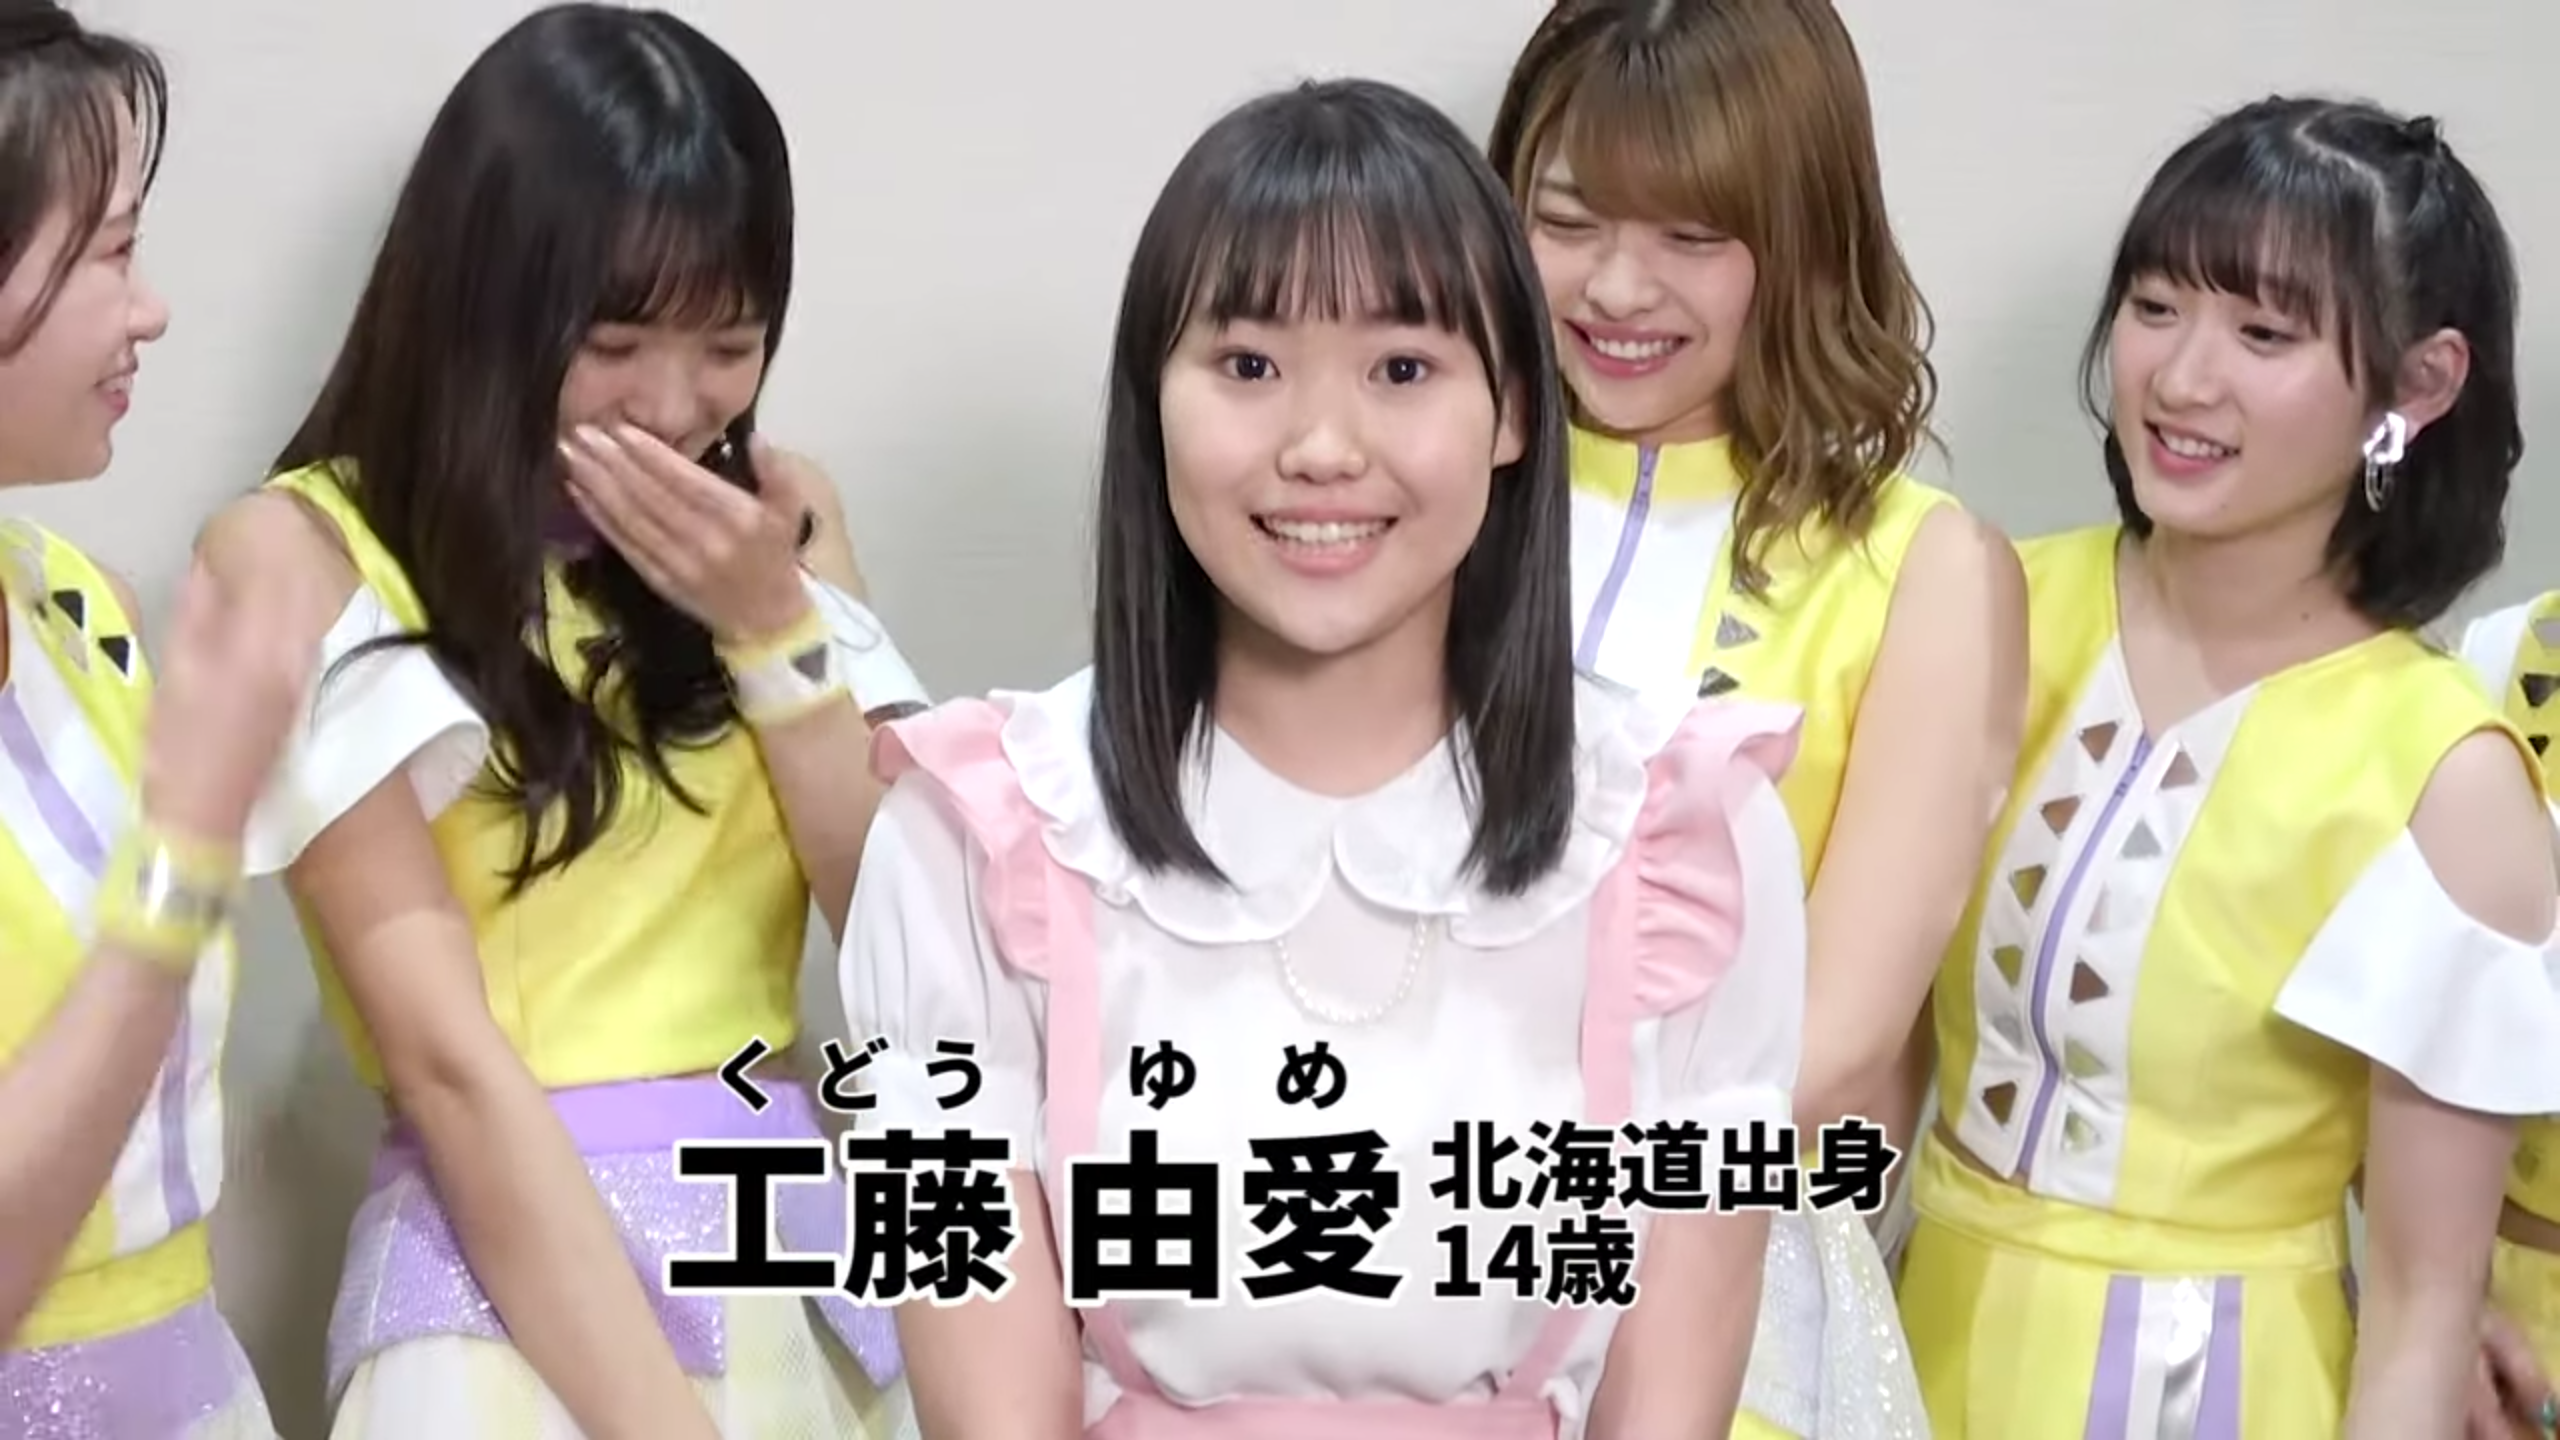 A girl in a white blouse (Yume) with a pink-trimmed pink pinafore is standing in front of four women in yellow and white costumes (Juice=Juice members Takagi Sayuki, Inaba Manaka, Kanazawa Tomoko, Miyamoto Karin). Text (in Japanese): Kudo Yume - From Hokkaido - 14 Years Old.